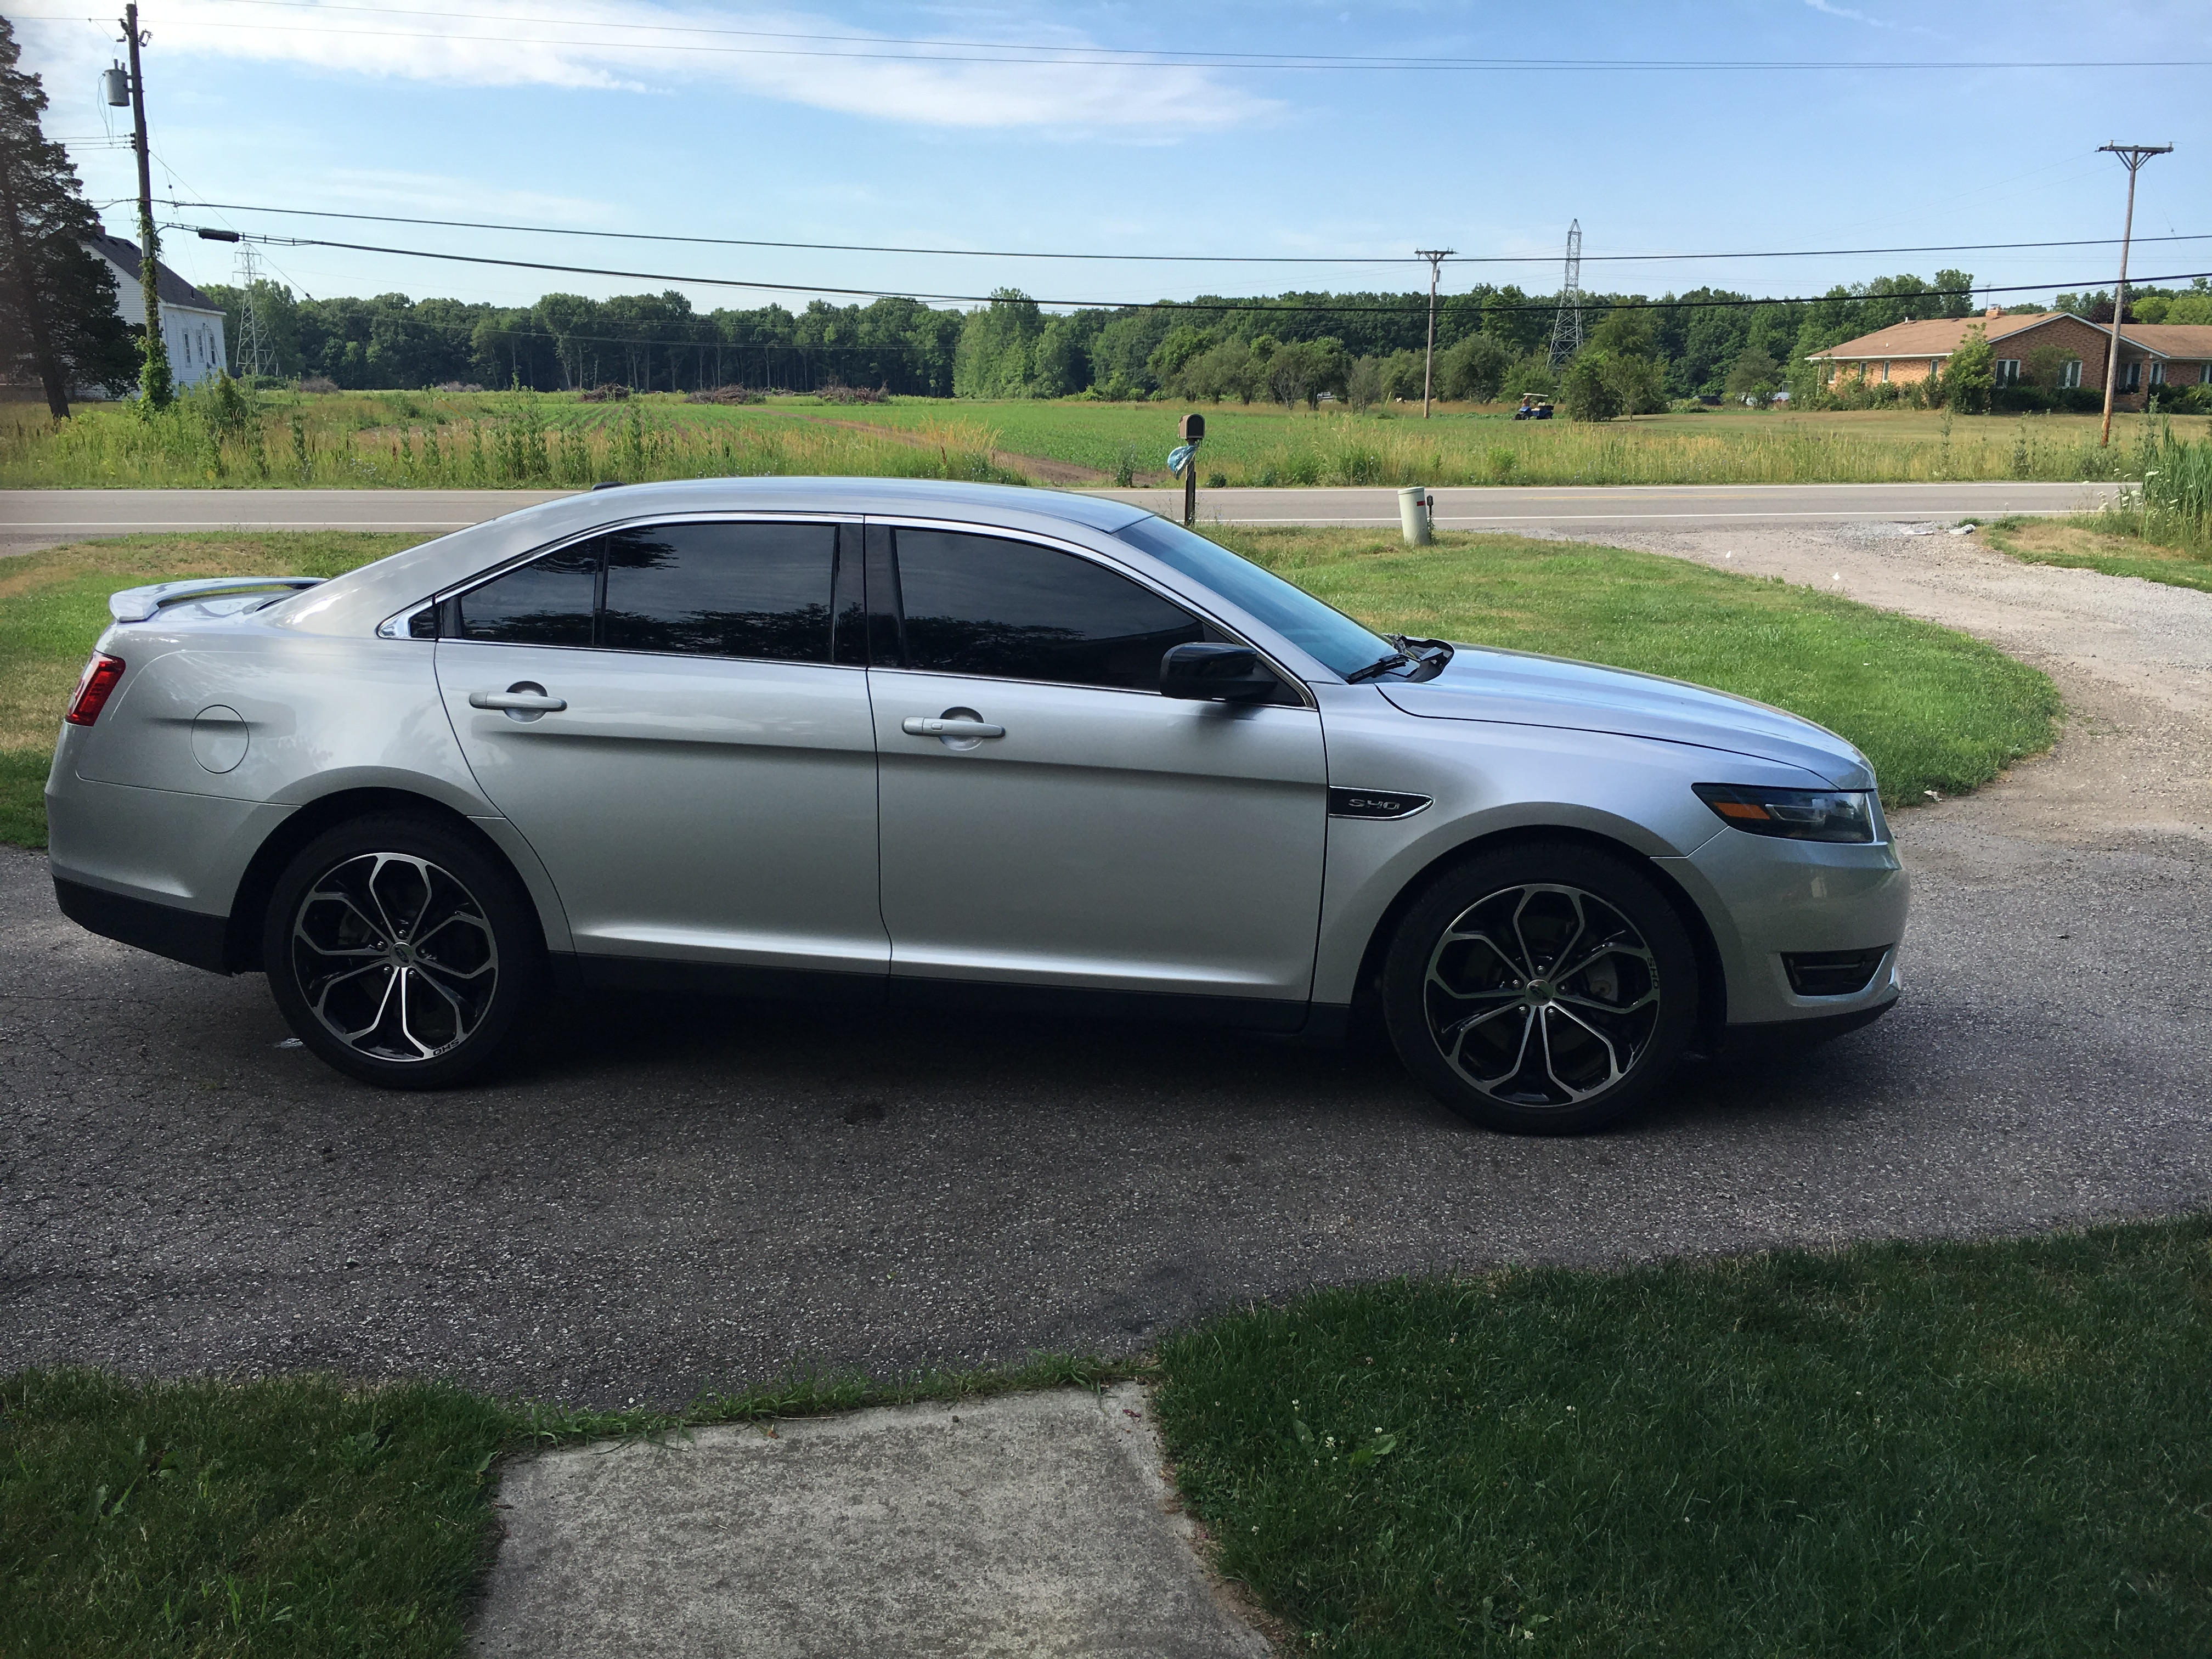 2016 Taurus Sho >> 2015 FORD TAURUS SHO ECOBOOST AWD - Buds Auto - Used Cars for Sale in Michigan - Buds Auto ...